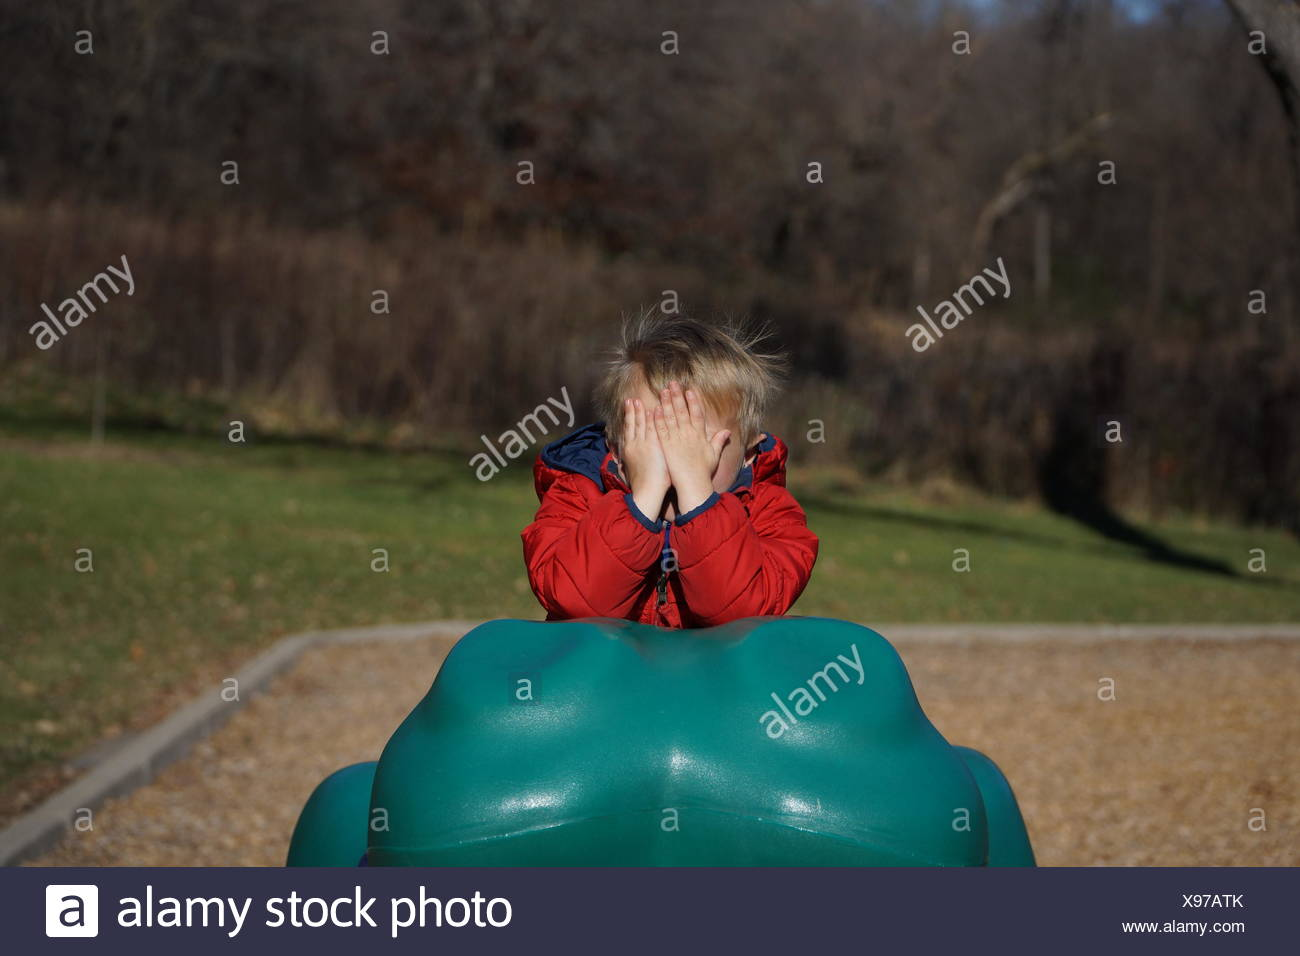 Boy Hiding Face At Playground - Stock Image